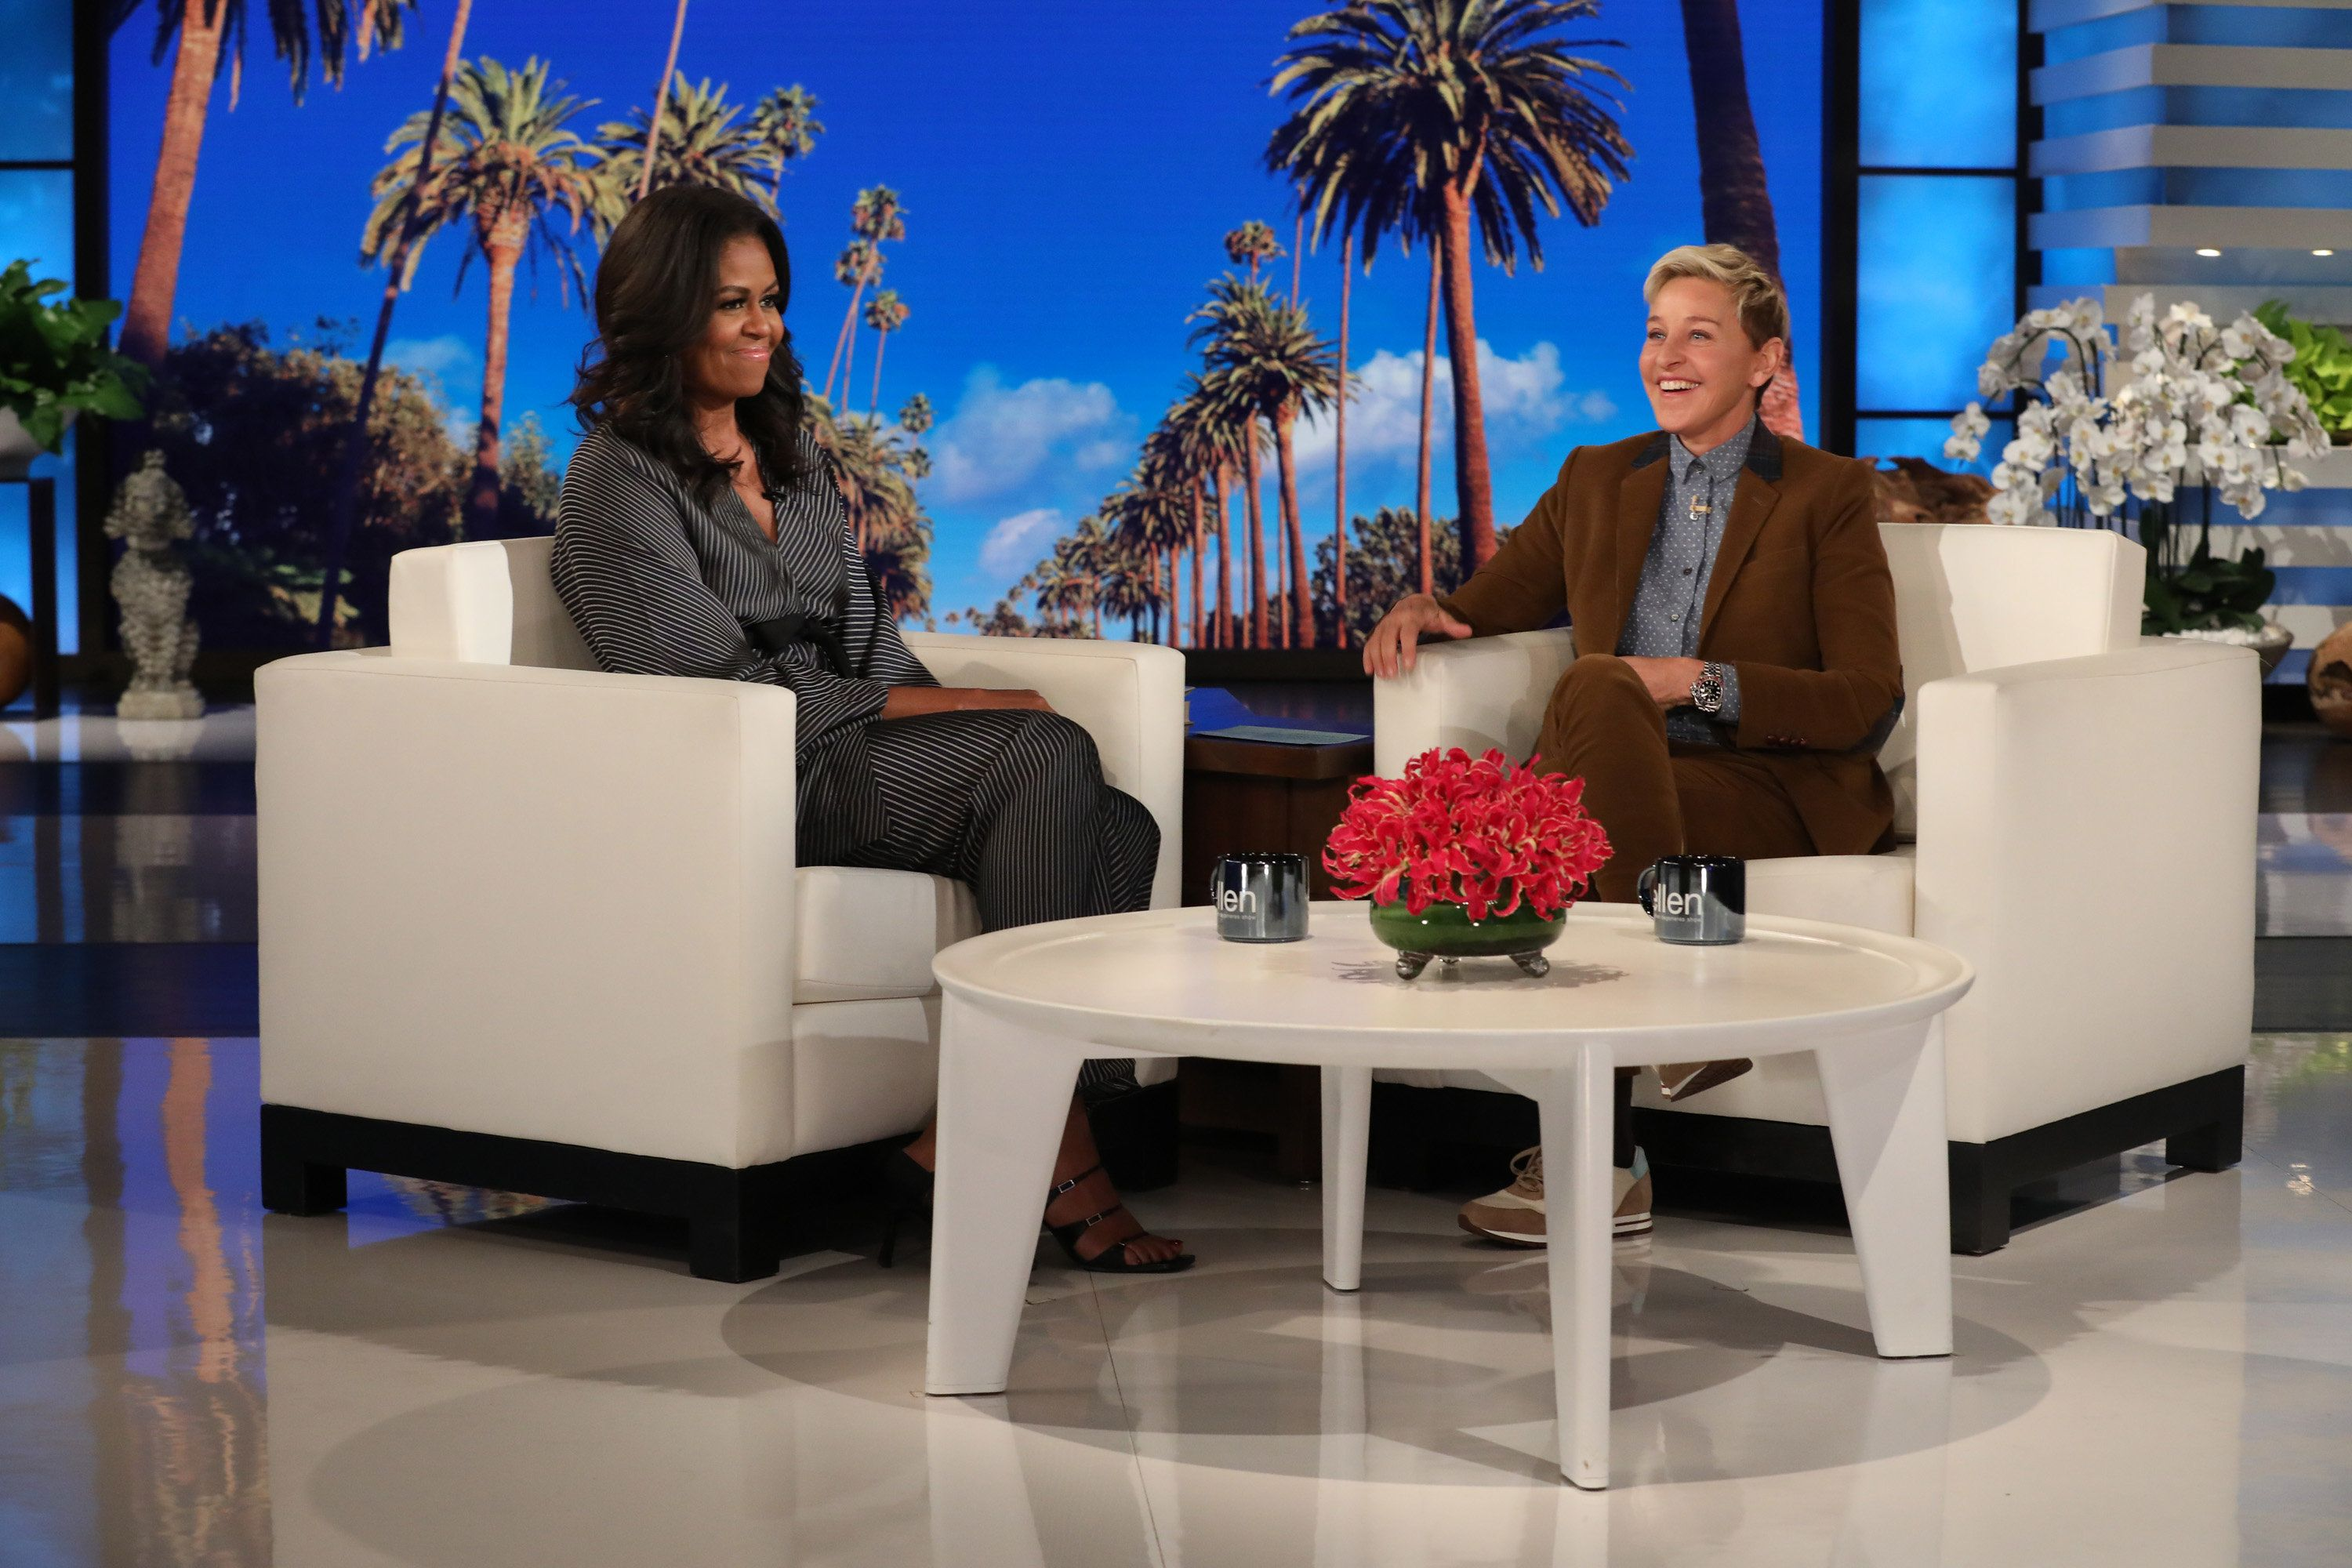 Michelle Obama Zings Trump's Inauguration Crowd Size On Ellen's